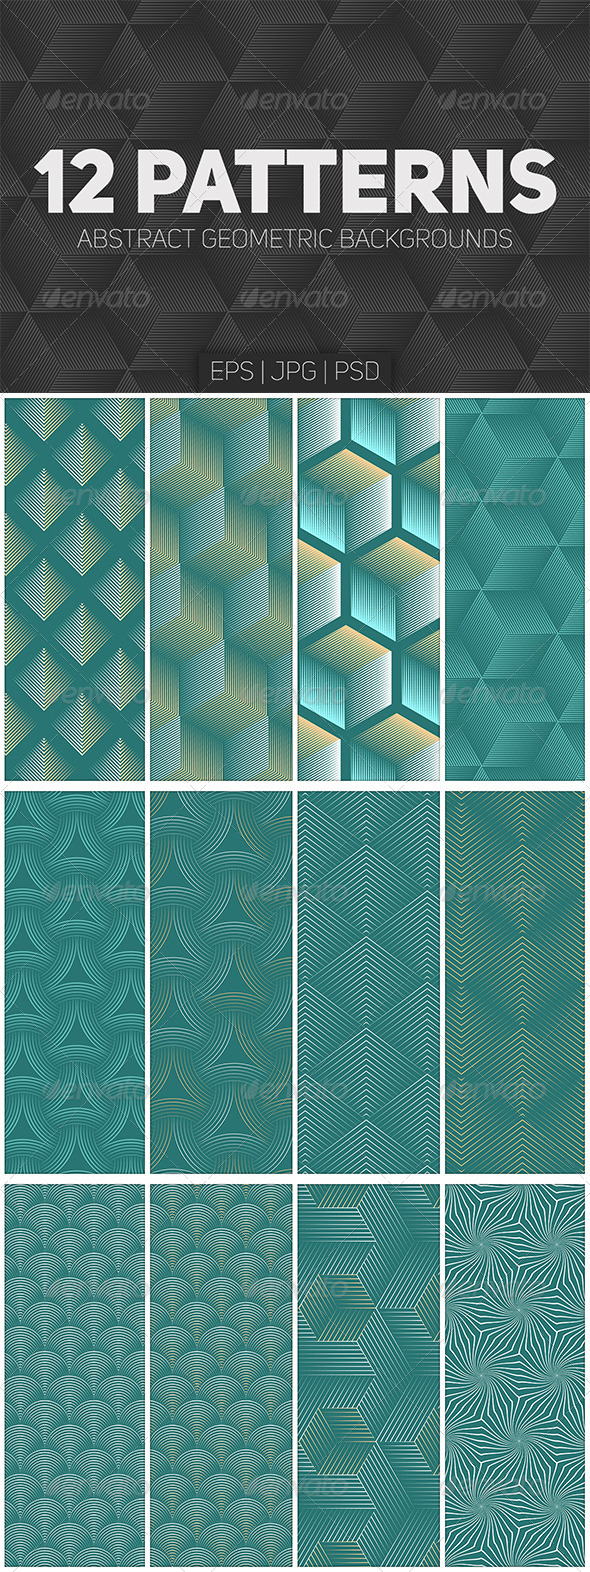 12 Seamless Geometric Patterns